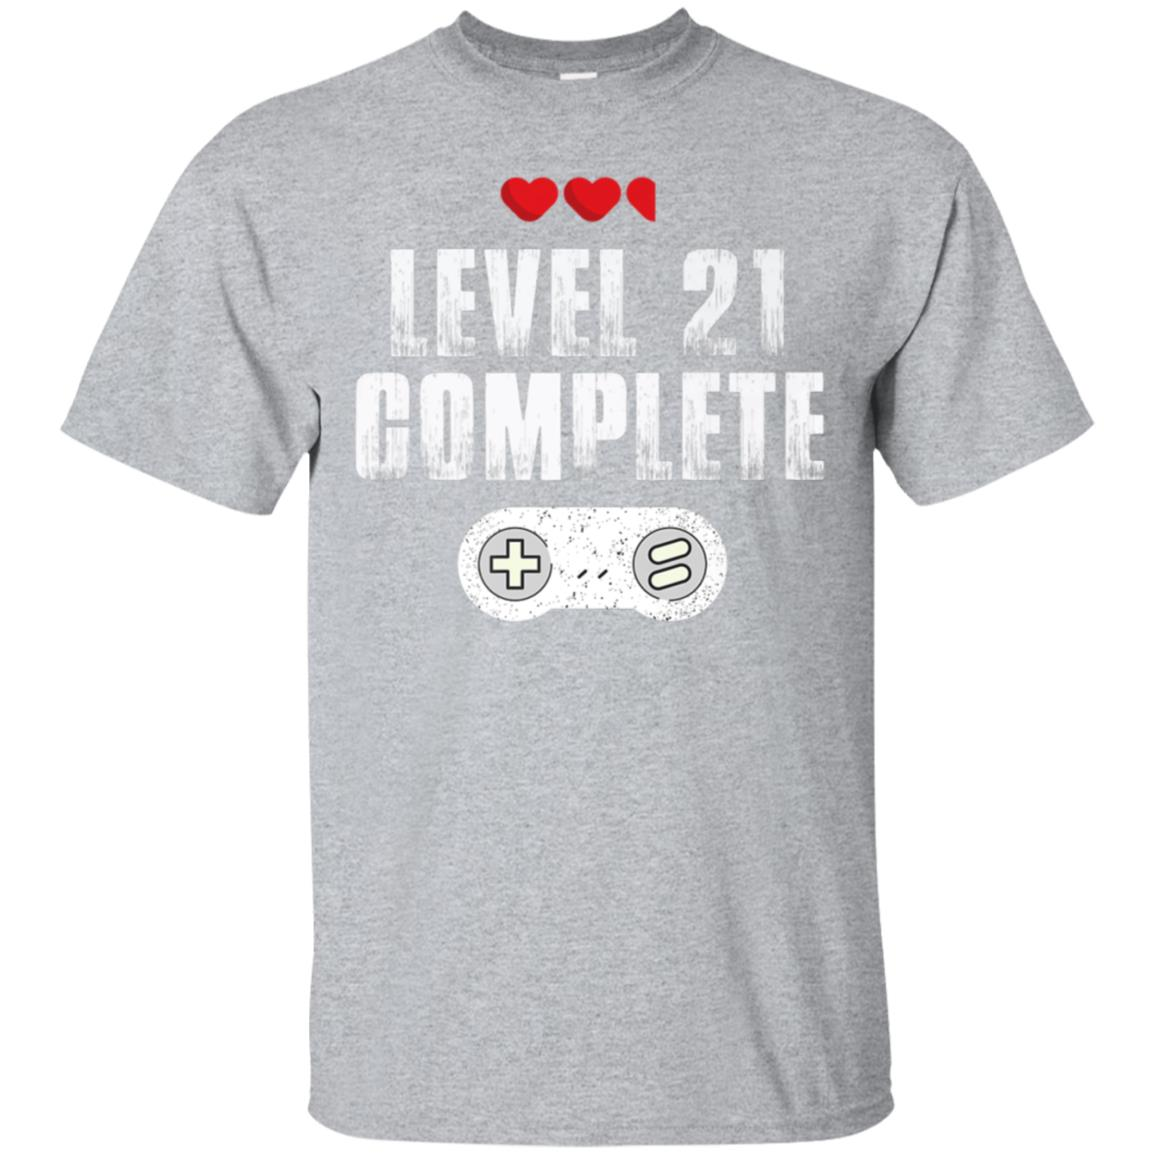 Awesome 21st Birthday Gift Shirts For Him And Her Level 21 Complete